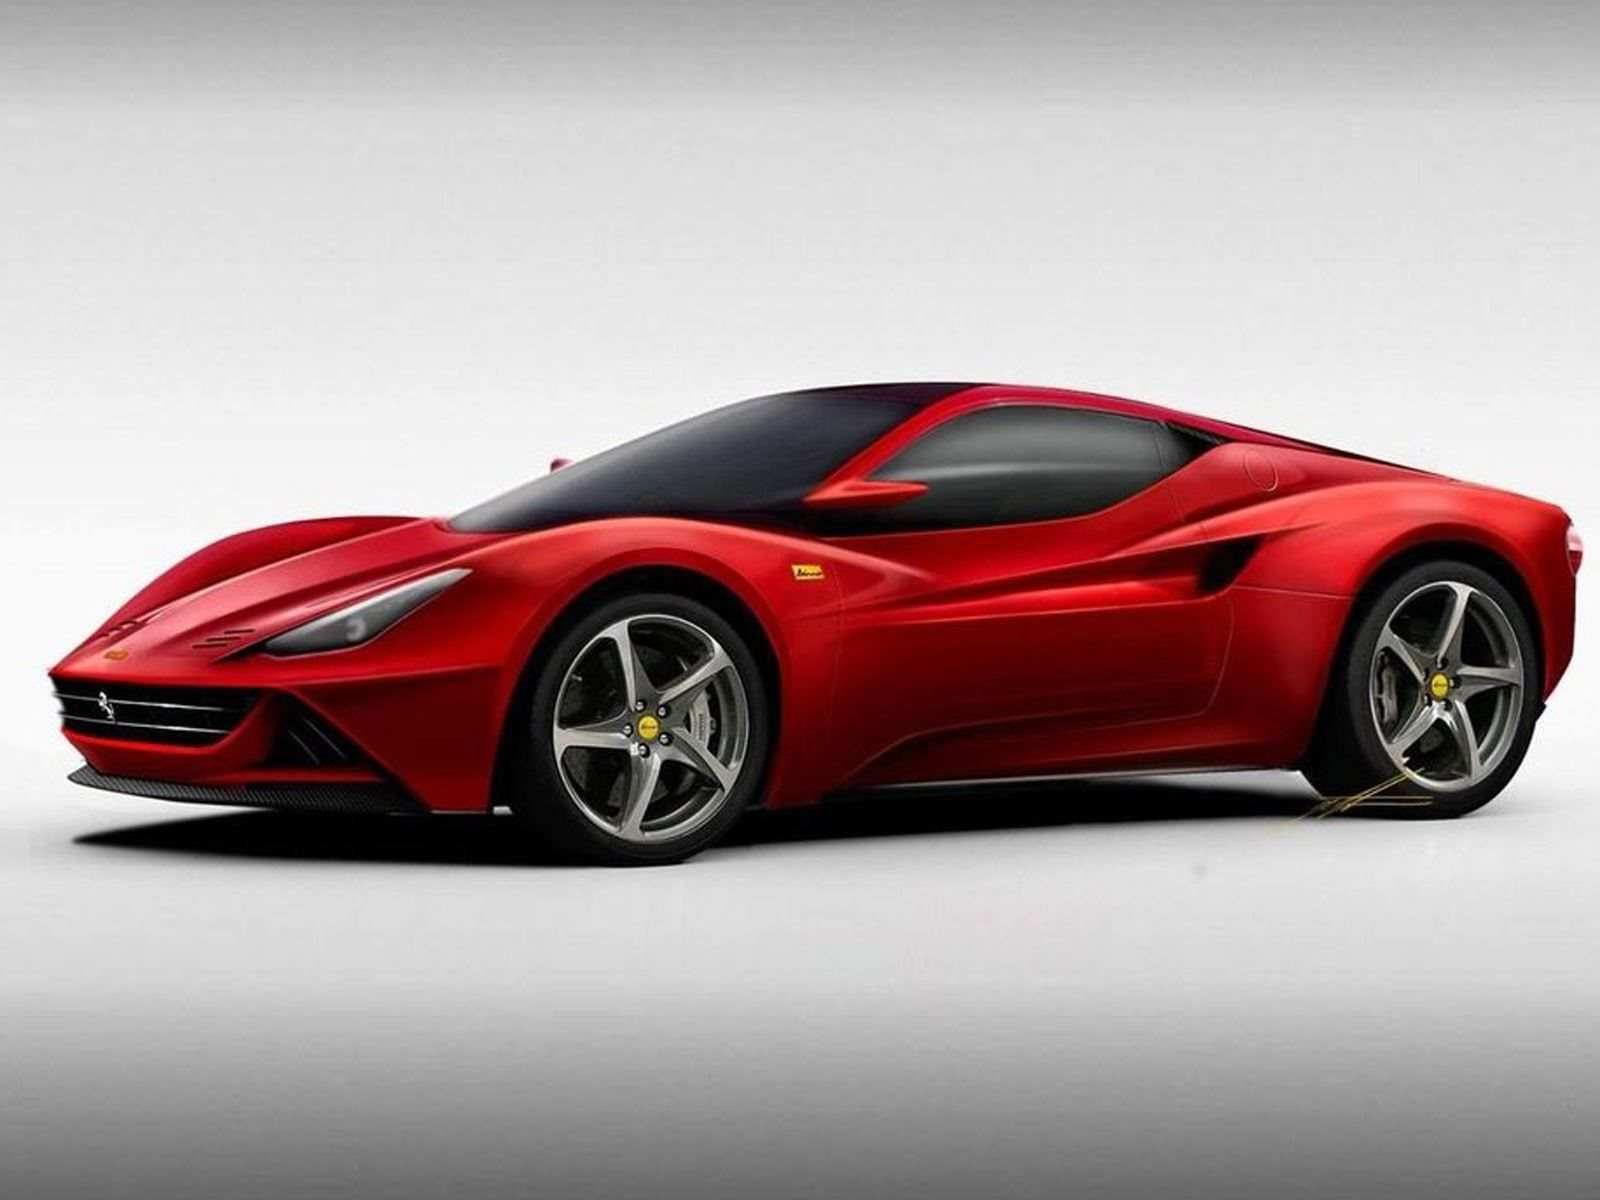 22 Gallery of 2020 Ferrari Models Reviews with 2020 Ferrari Models